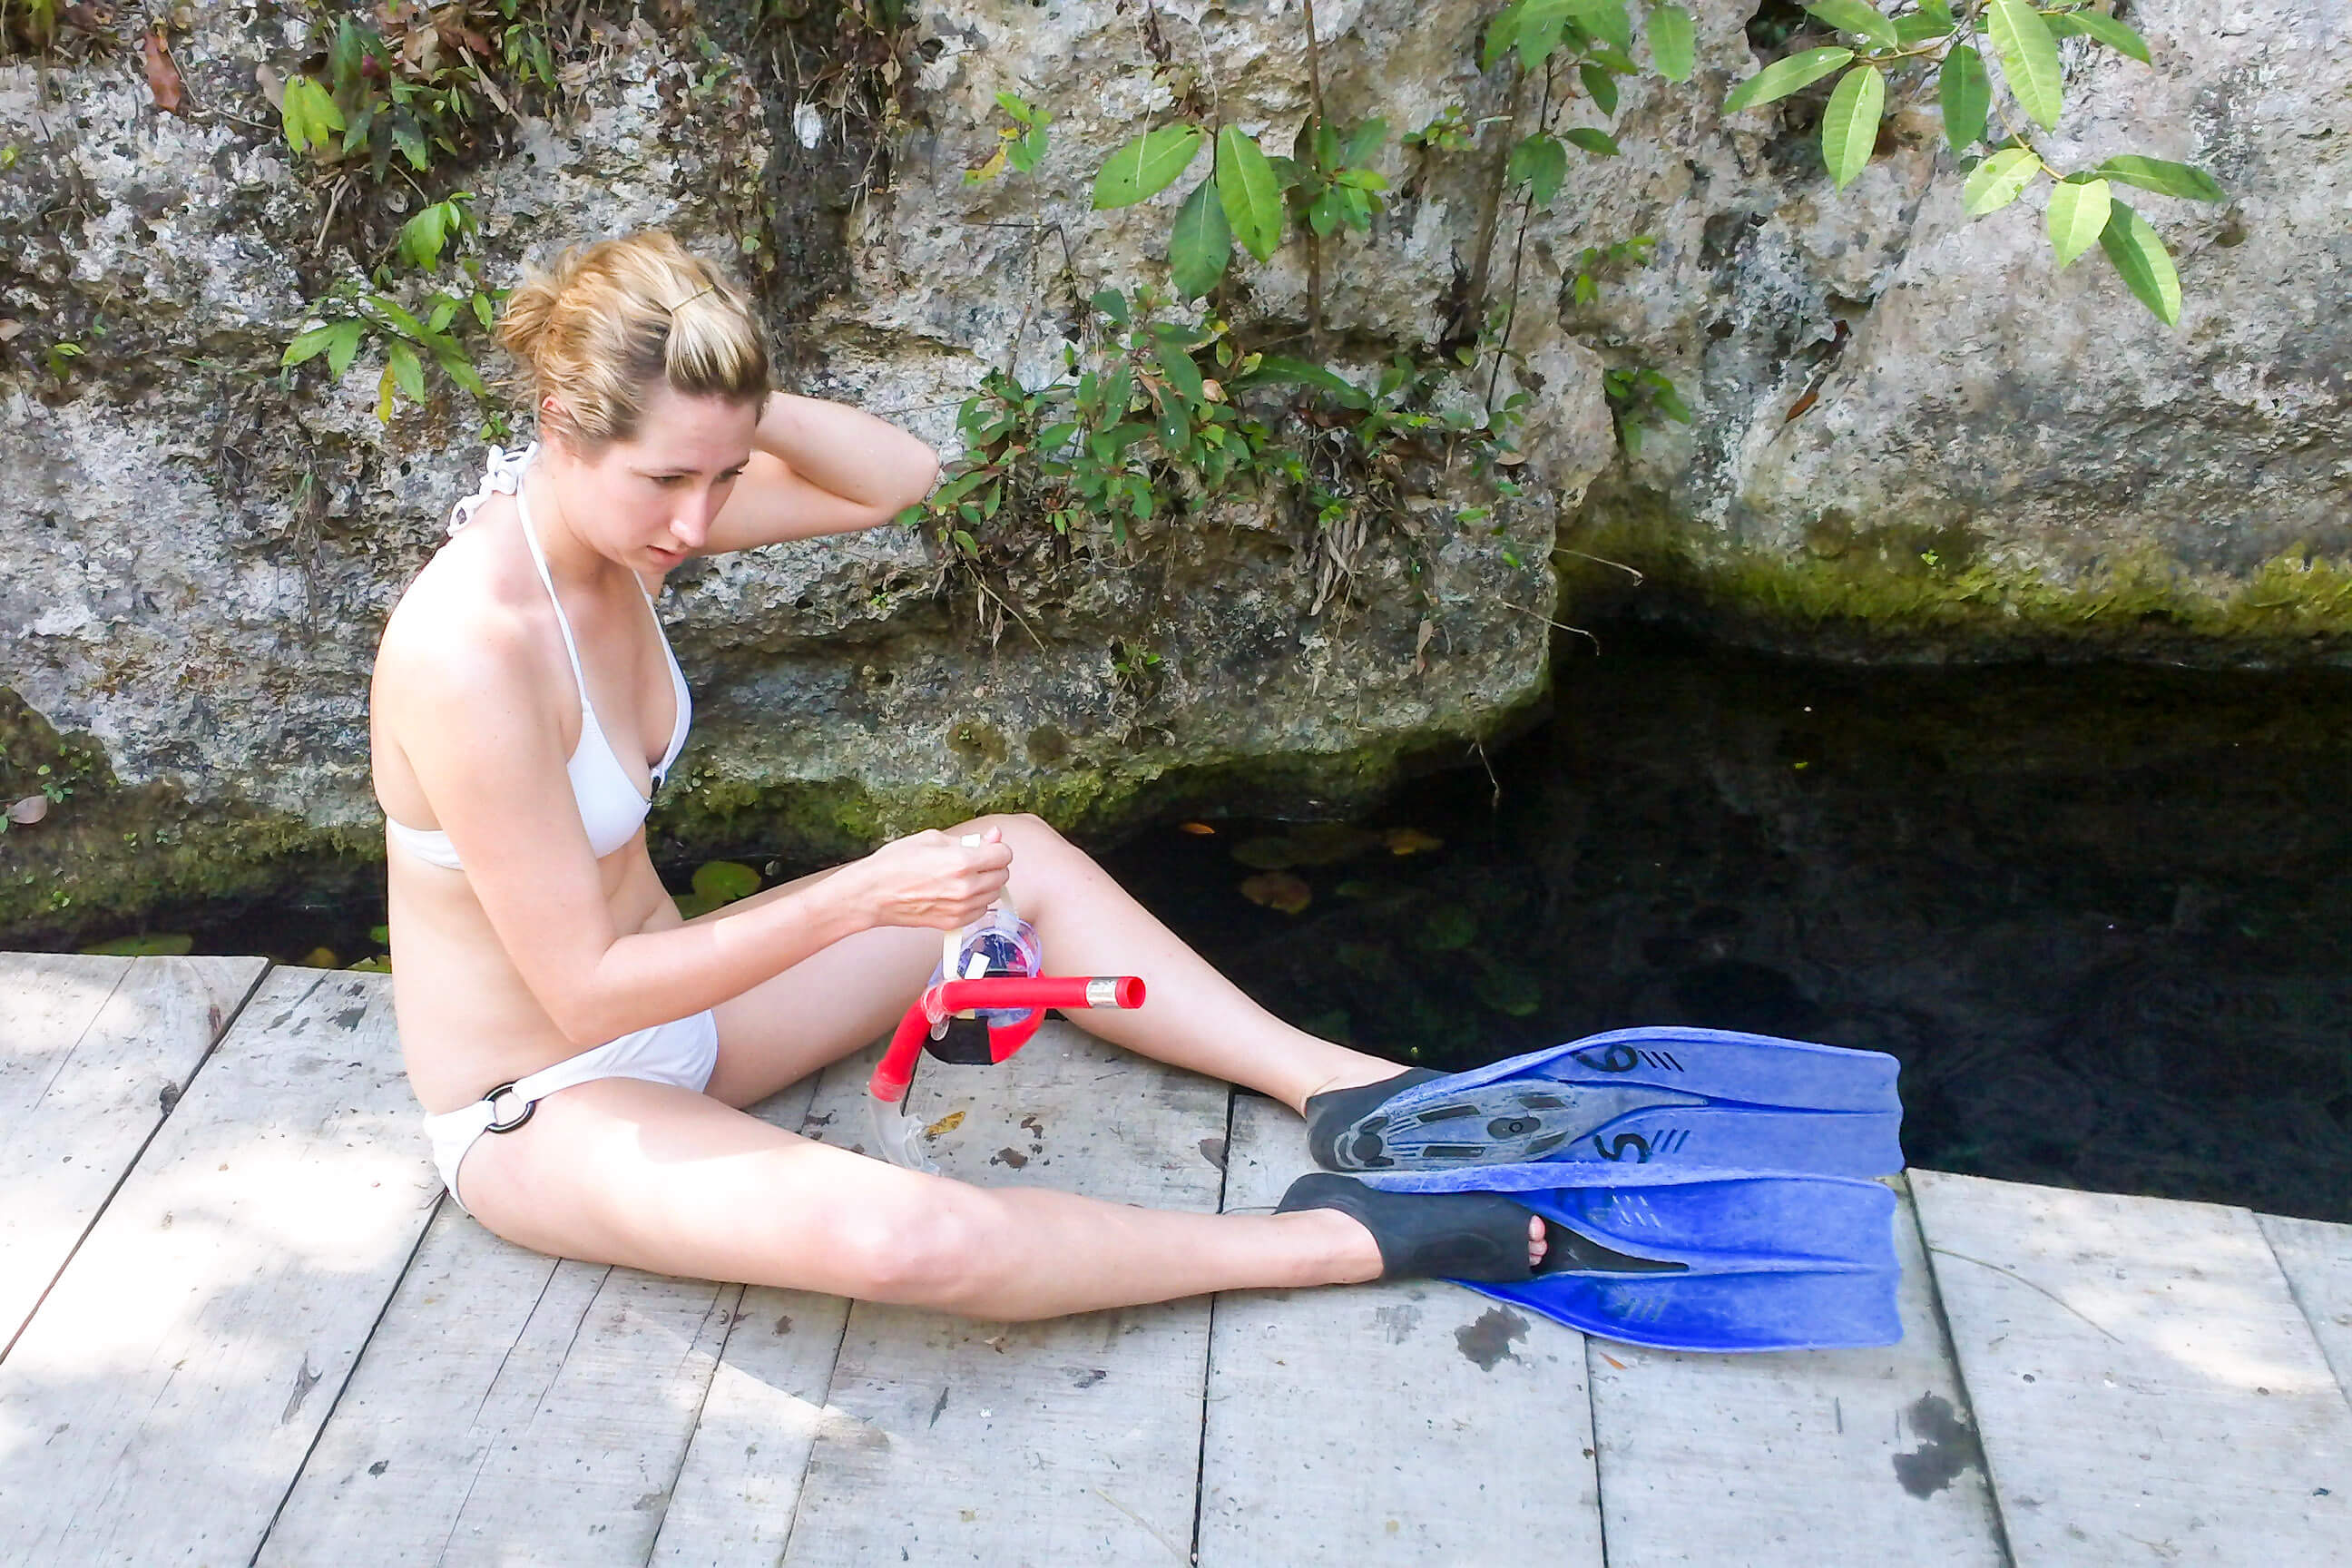 Kristin Getting Ready to Snorkel